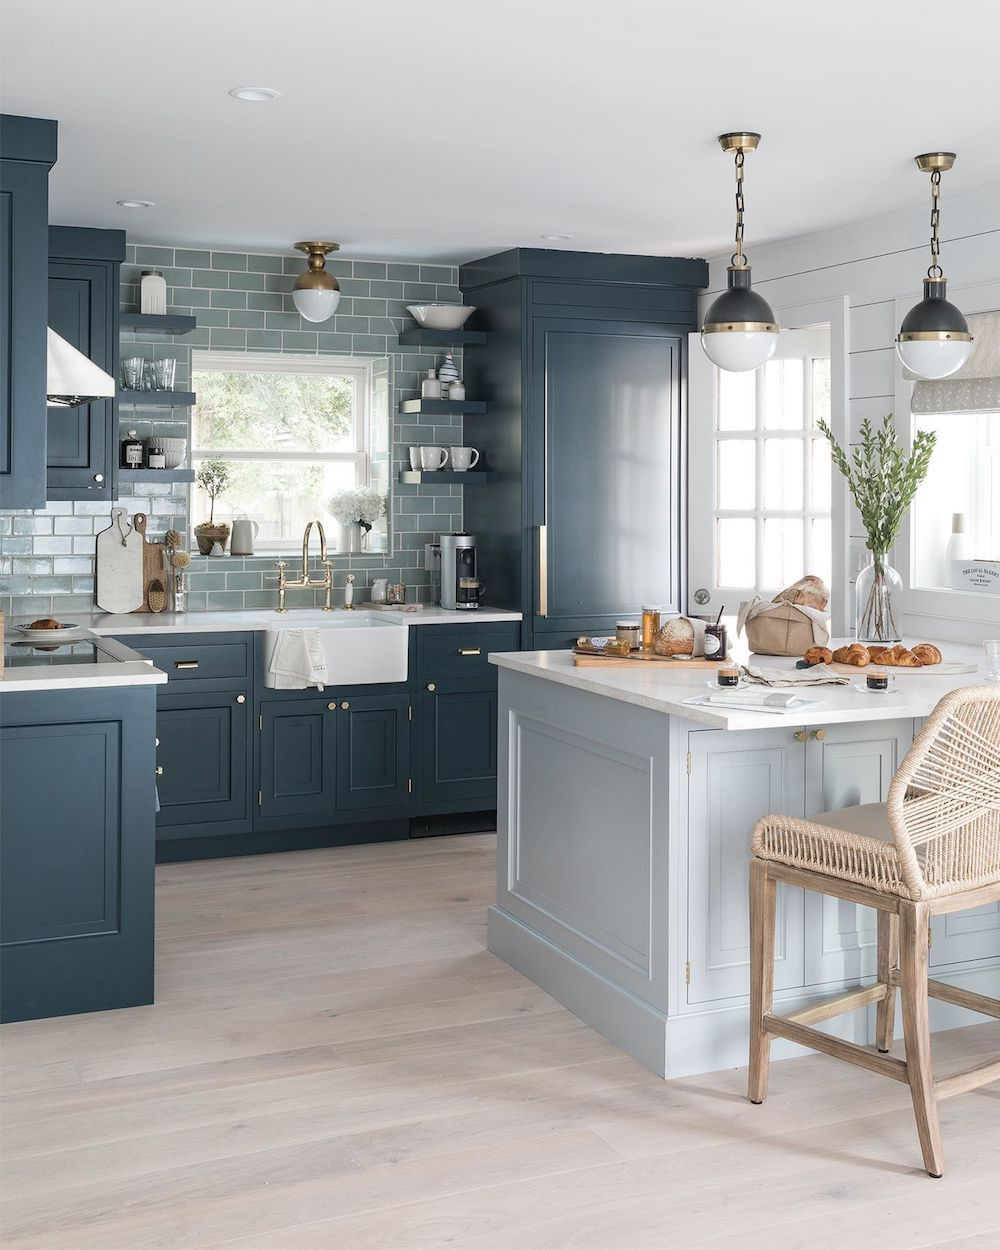 Shades of Blue coastal kitchen decor